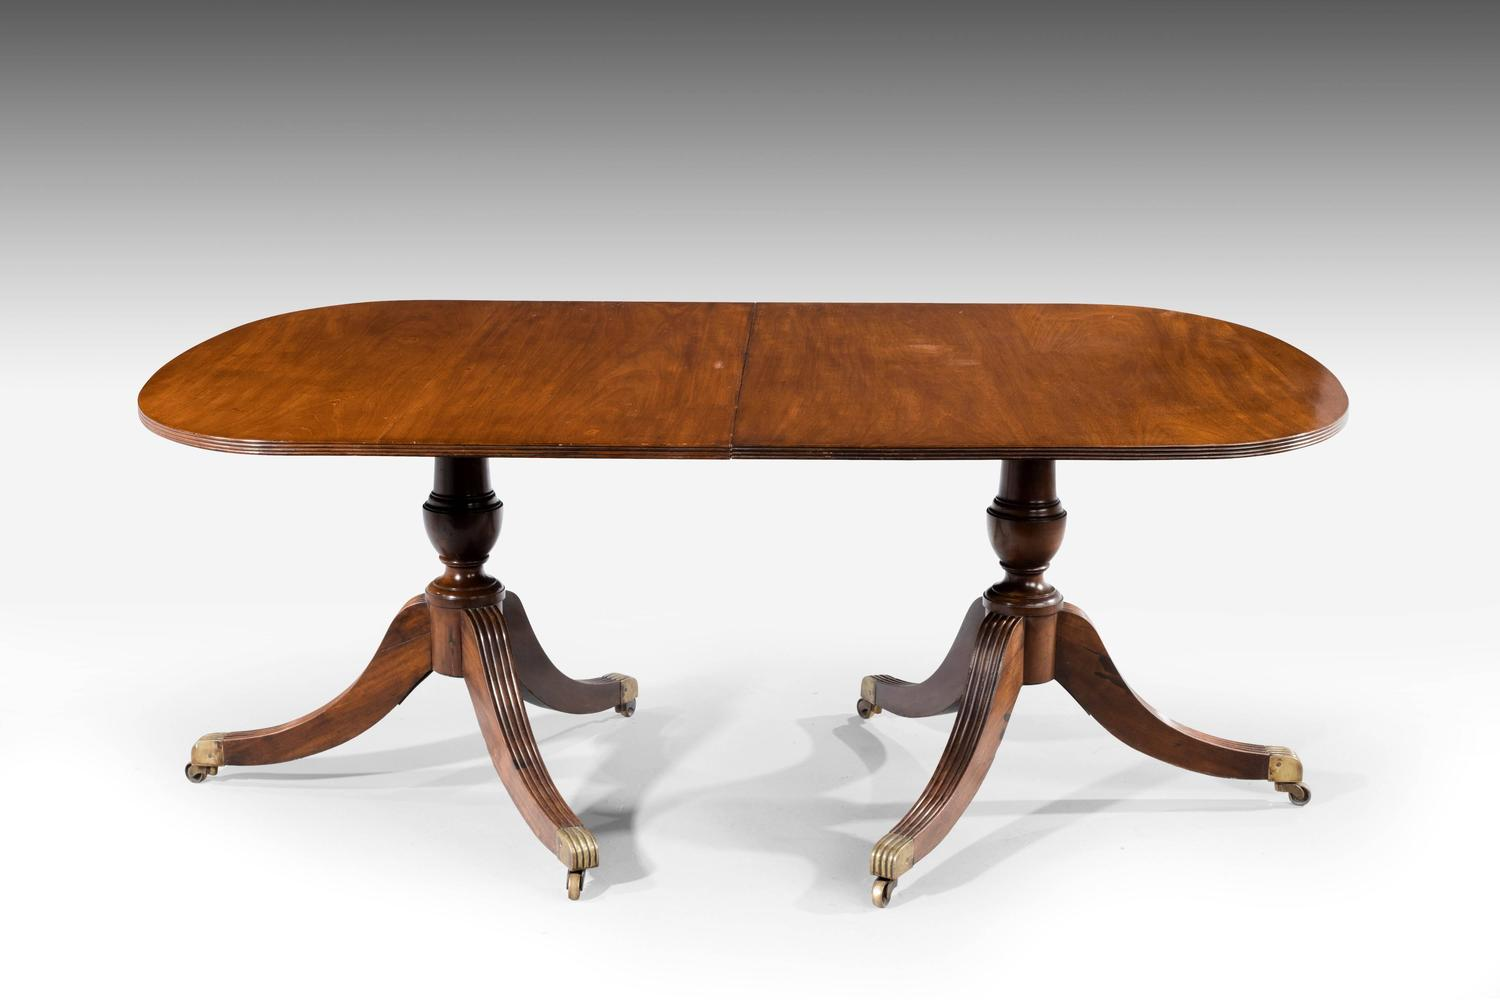 regency period two pillar dining table for sale at 1stdibs